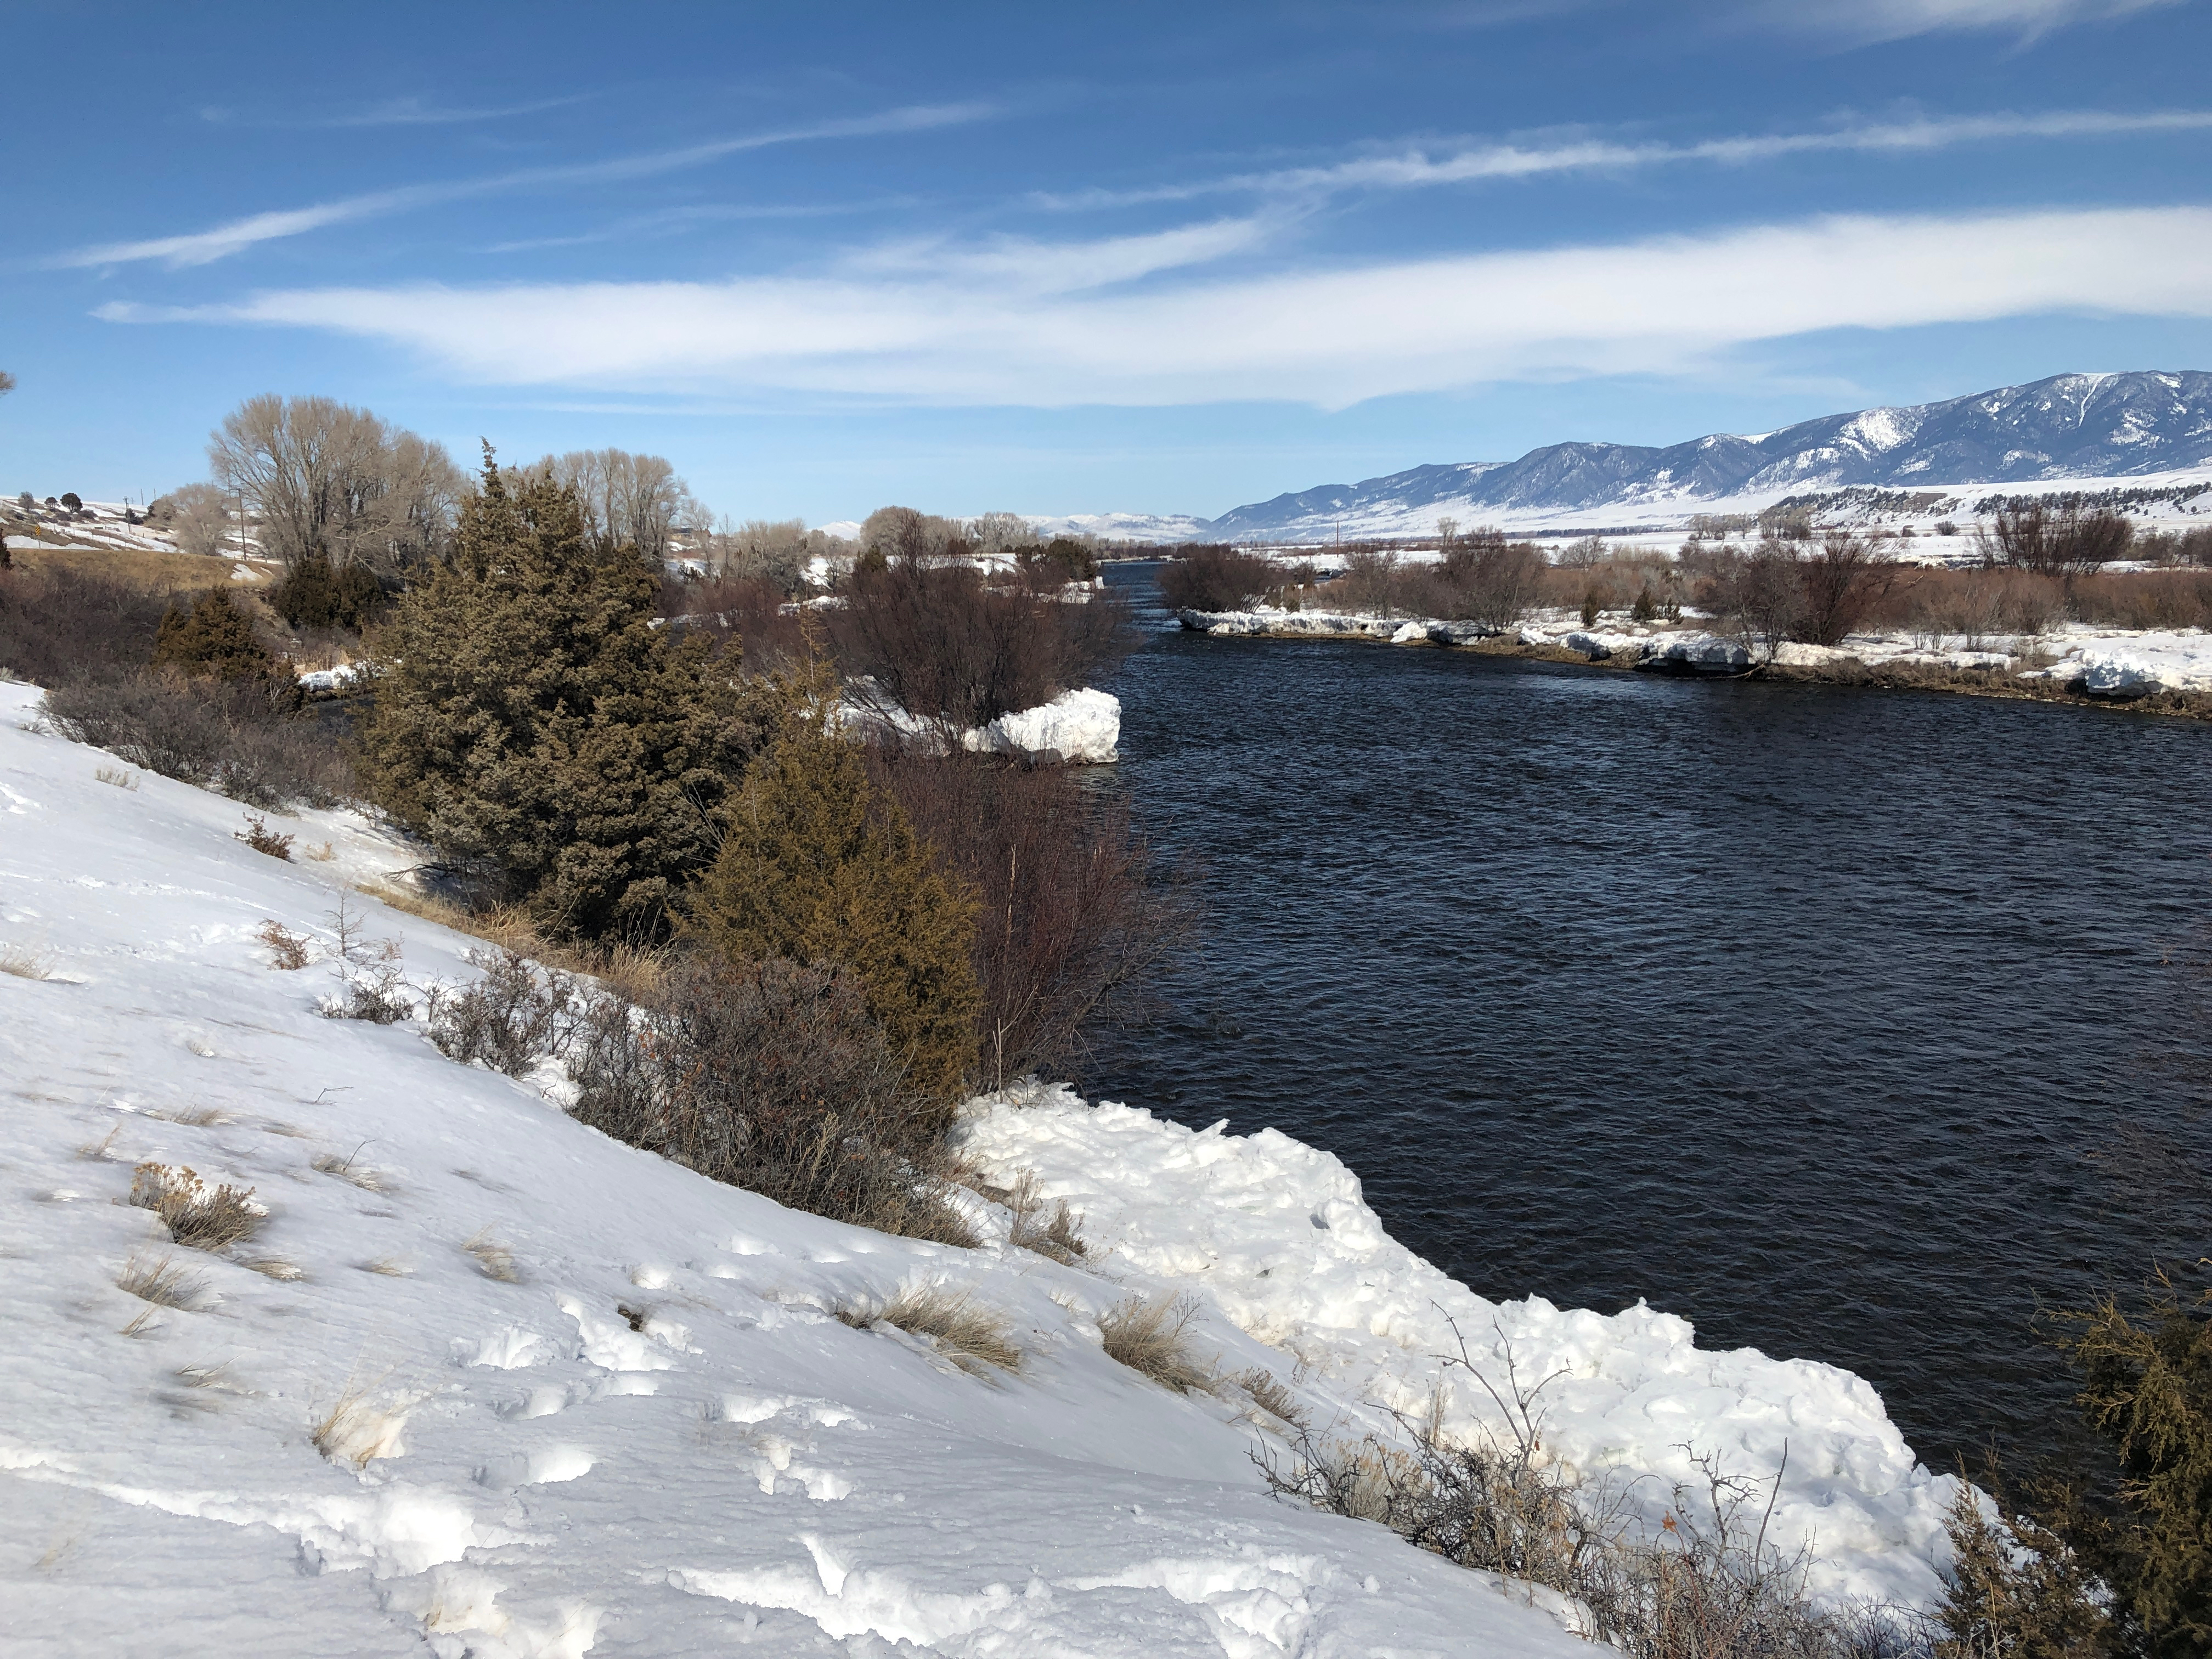 Looking north from Burnt Tree Hole FAS on the Madison River near Ennis, Montana.